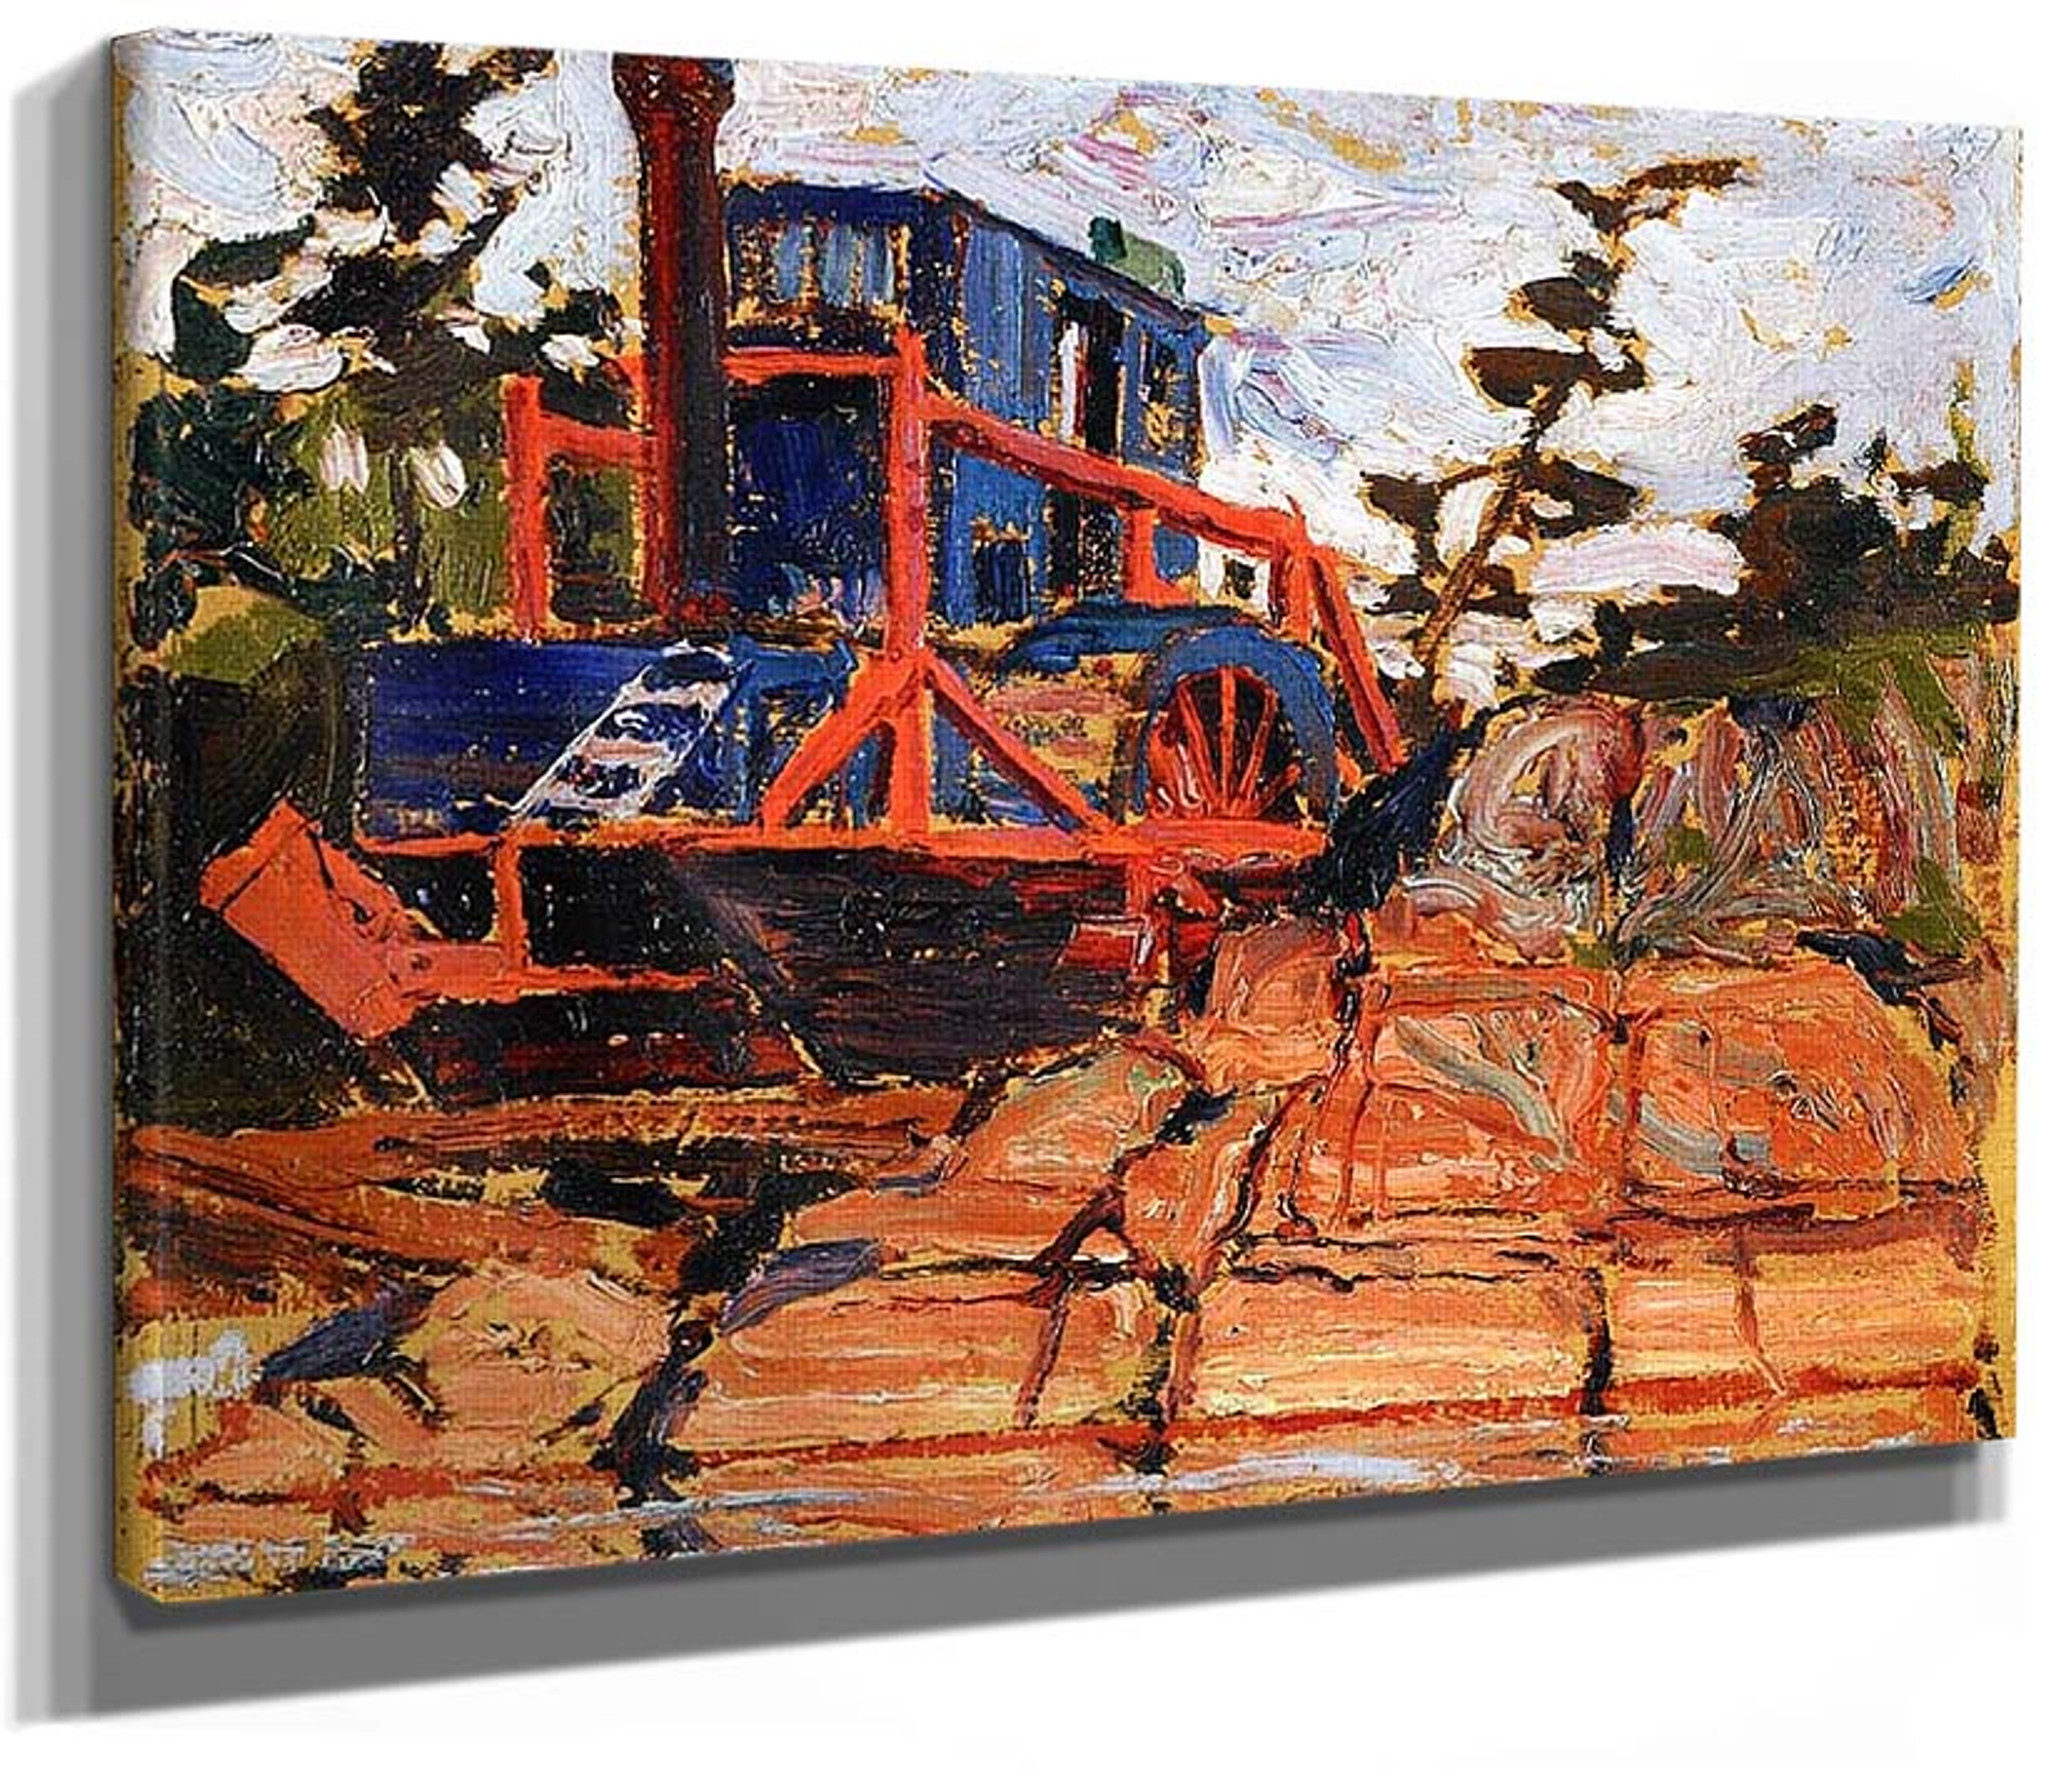 The Alligator Algonquin Park By Tom Thomson Art Reproduction From Wanford